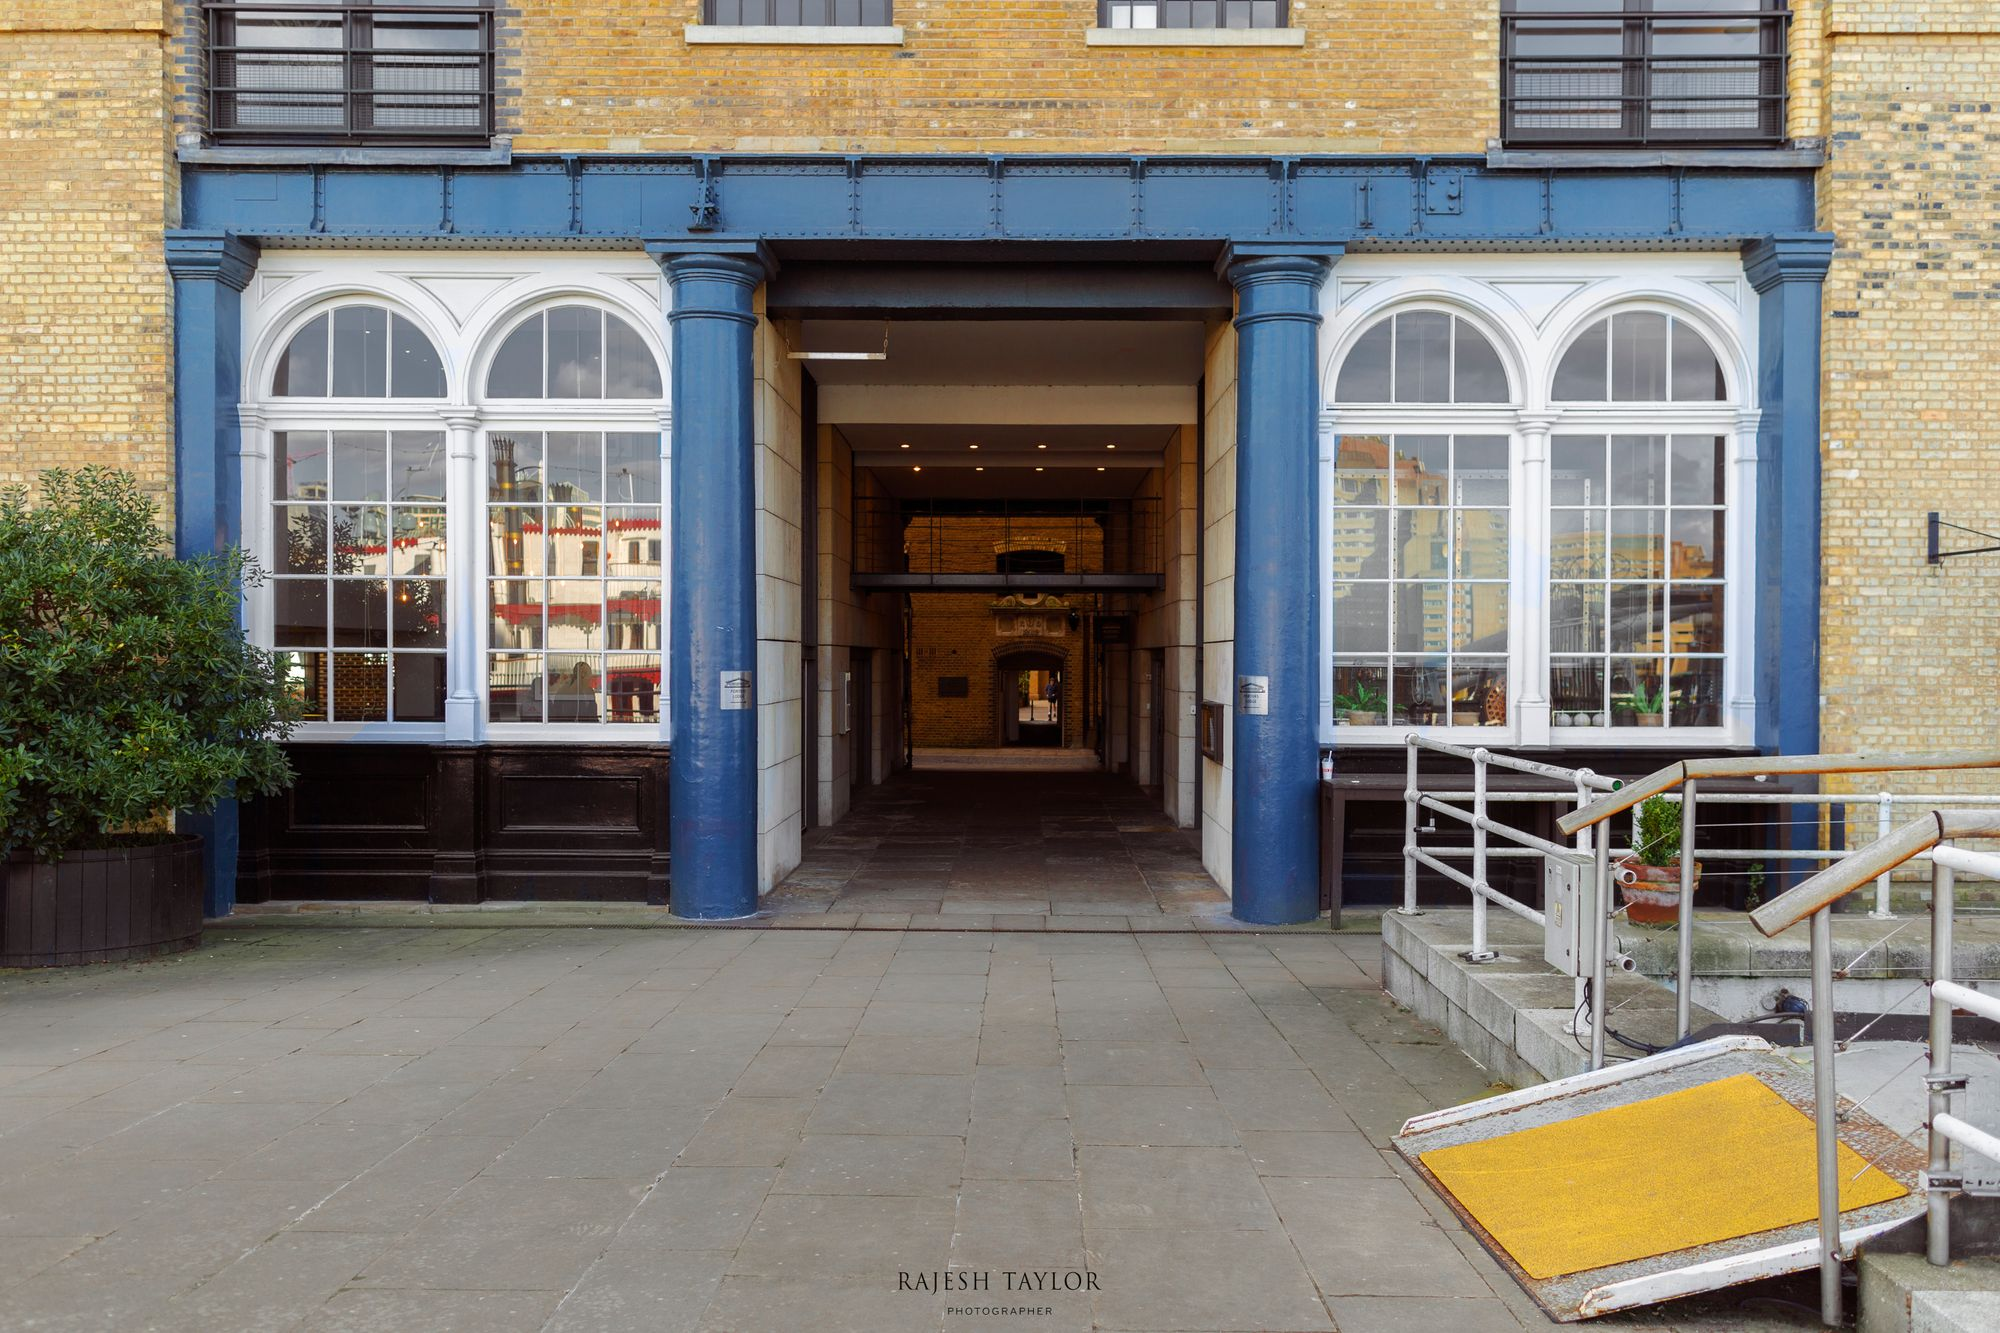 Porters Lodge Archway leads into Butler's Wharf Pier © Rajesh Taylor